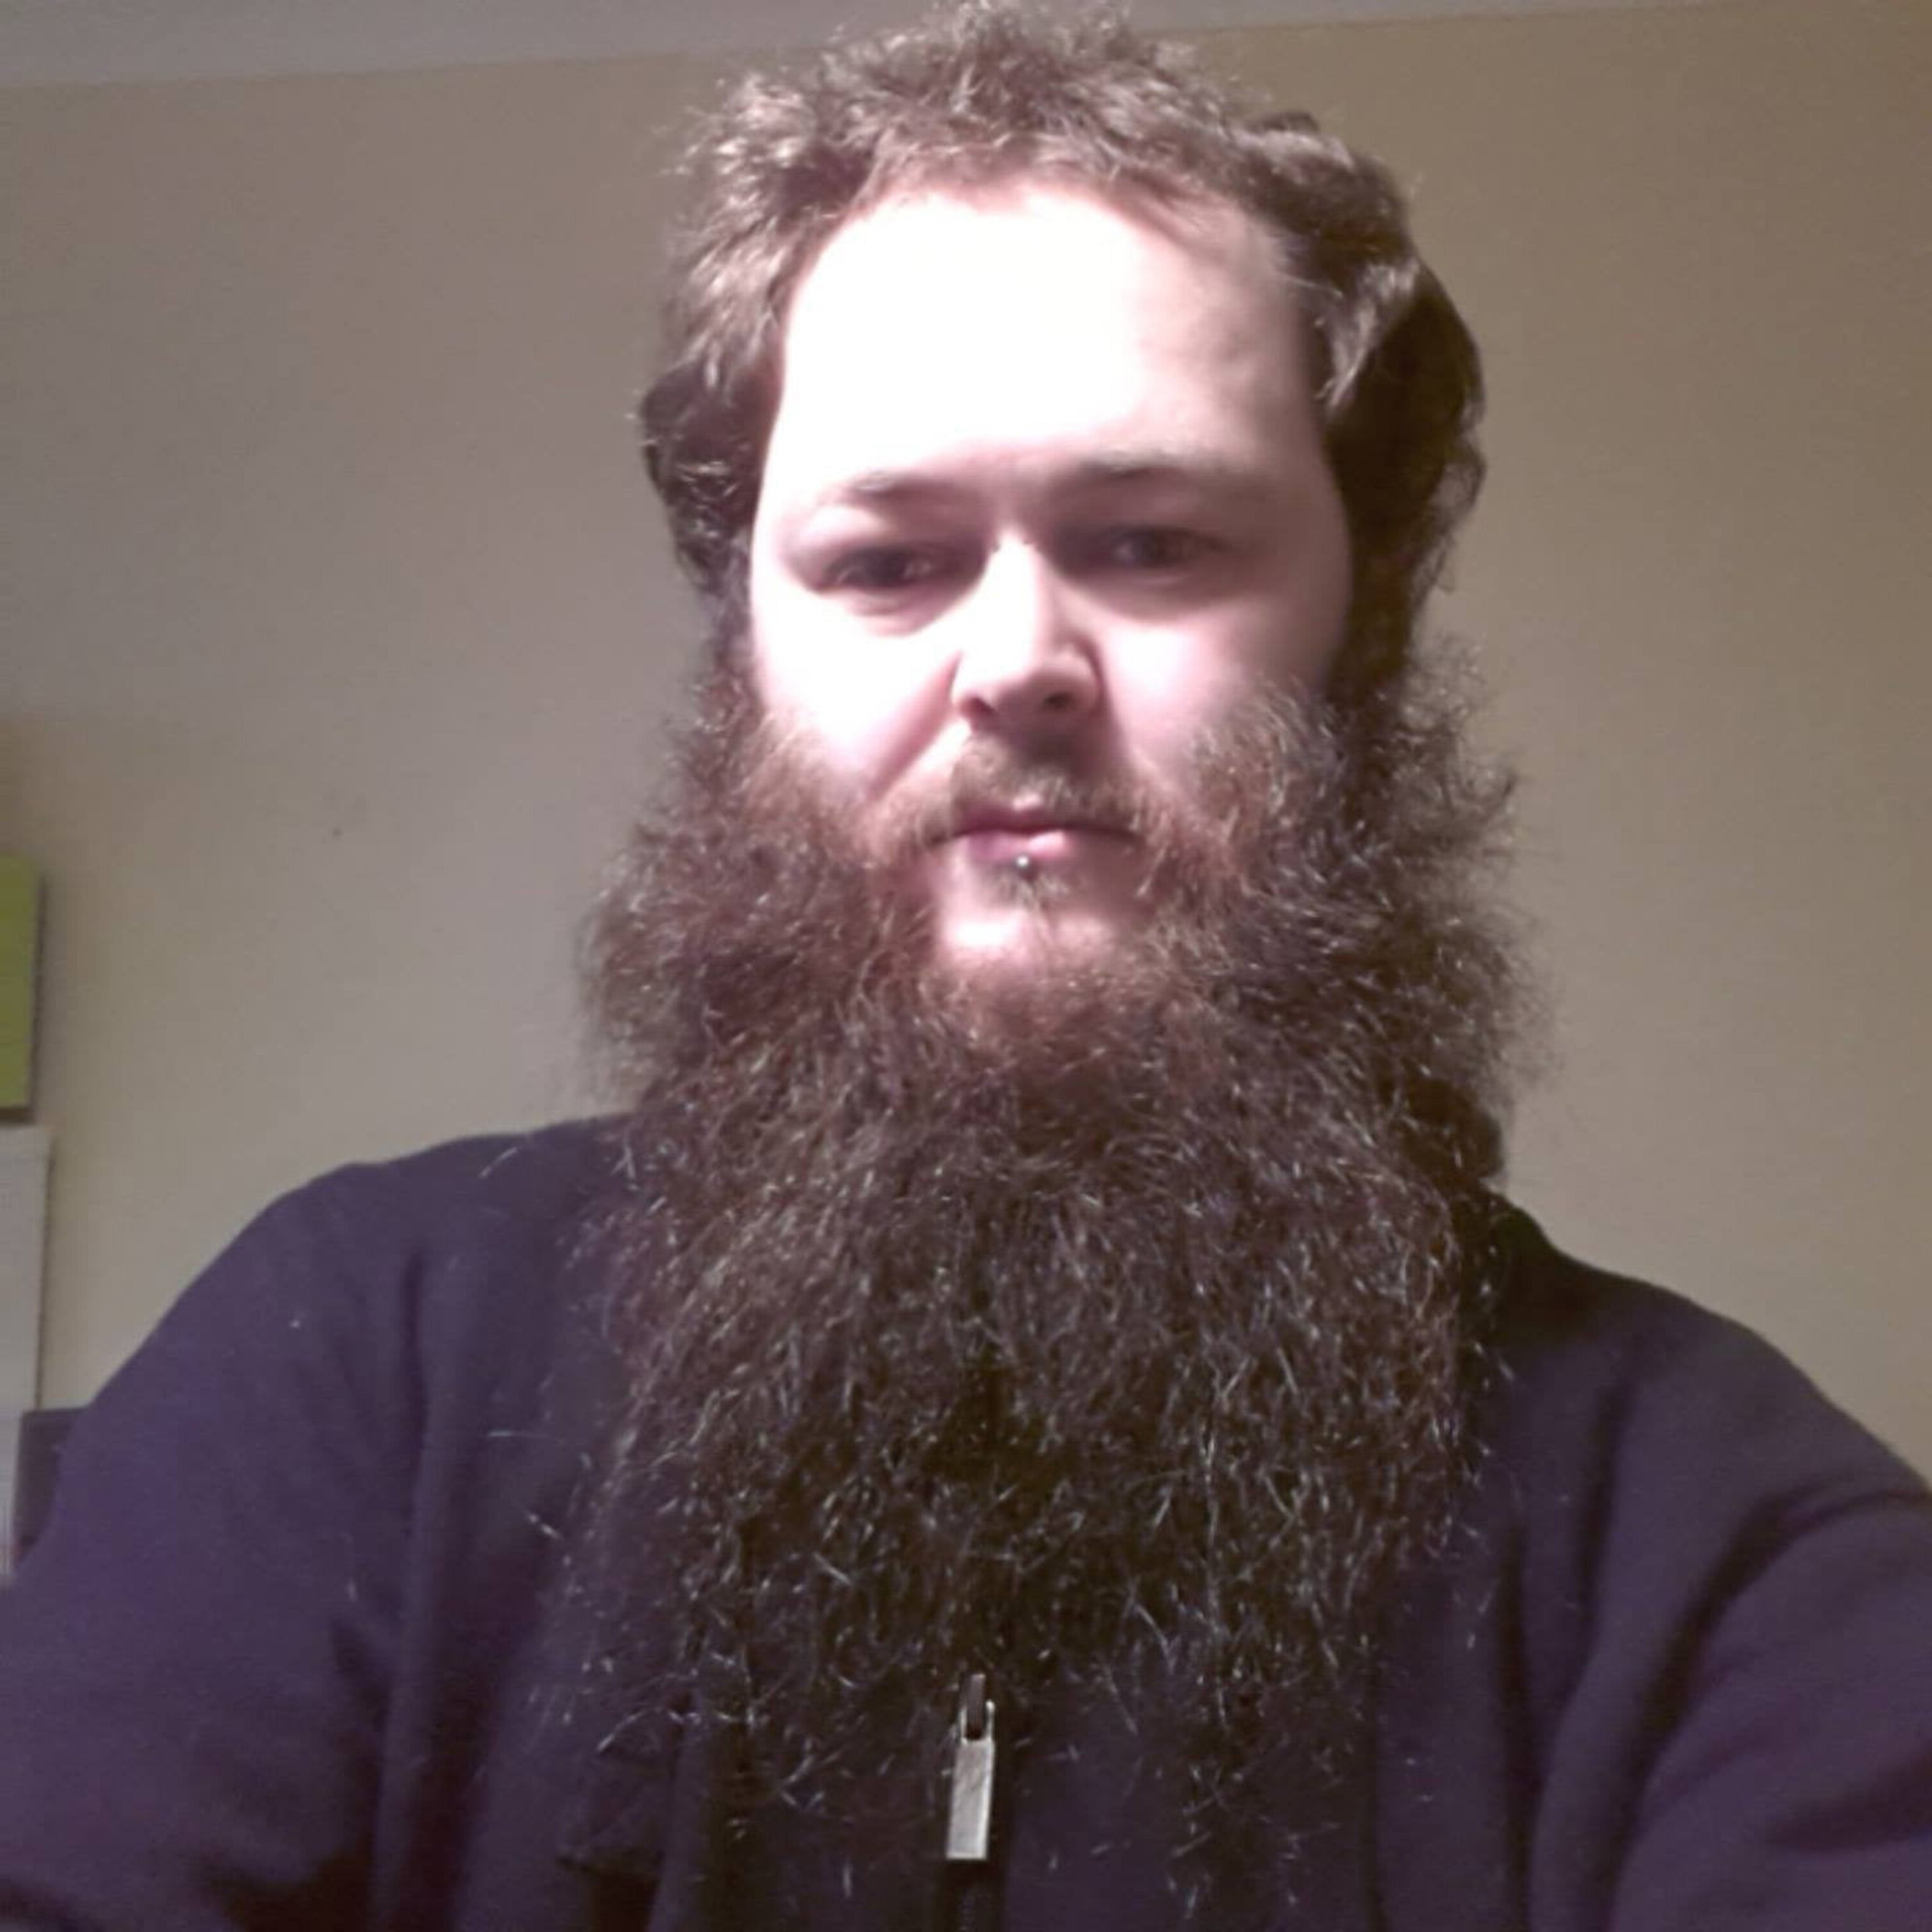 A full untrimmed beard style.